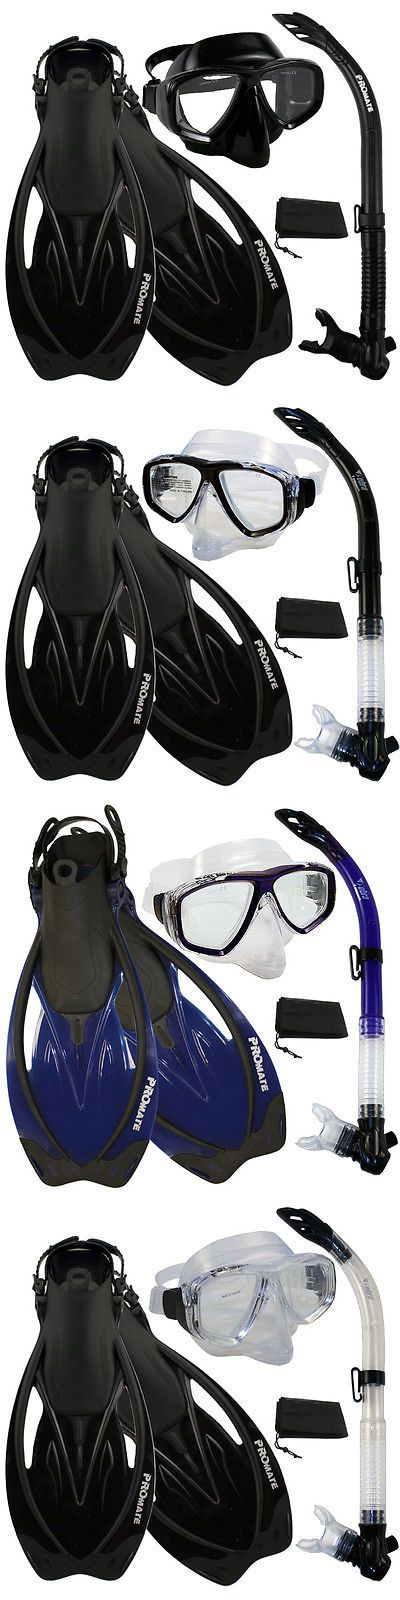 Snorkels and Sets 71162: Snorkeling Purge Mask Snorkel Fins Scuba Dive Gear Set -> BUY IT NOW ONLY: $47.5 on eBay!